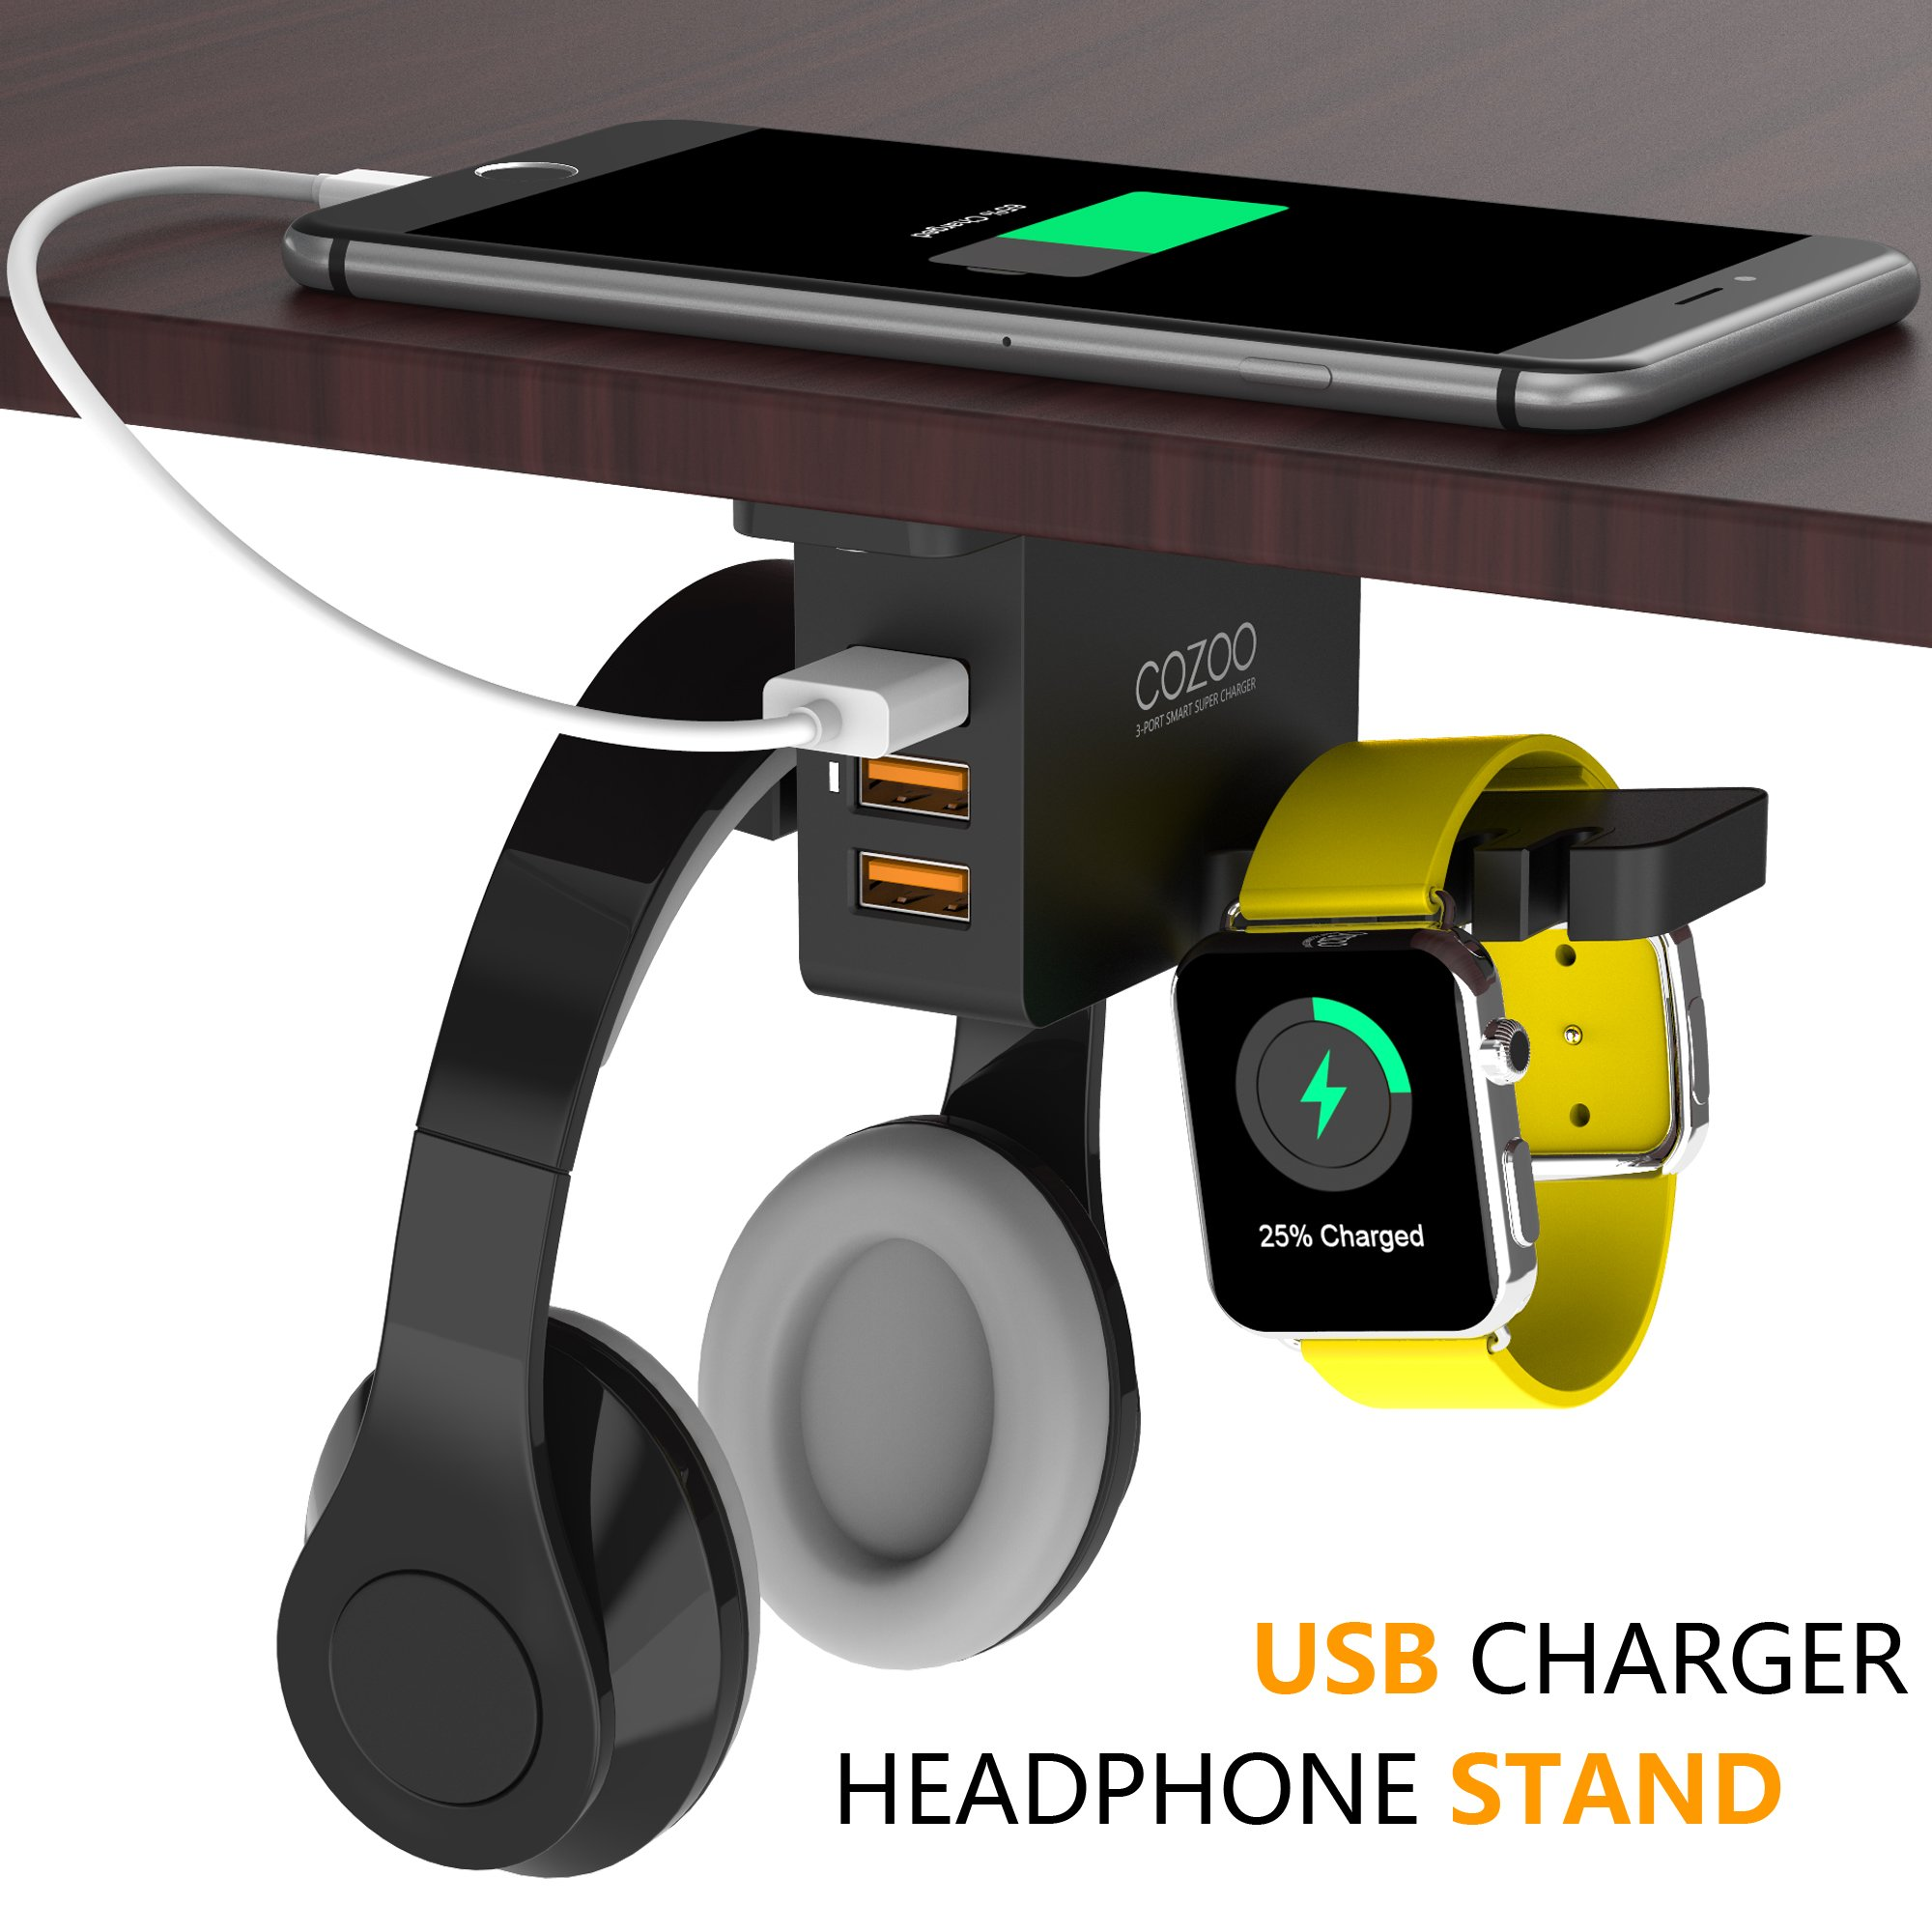 Headphone Stand with USB Charger COZOO Under Desk Headset Holder Mount with 3 port USB Charging Station and Apple Watch Stand Smart Watch Charging Dock Dual Earphone Hanger Hook for All Headphones by cozoo